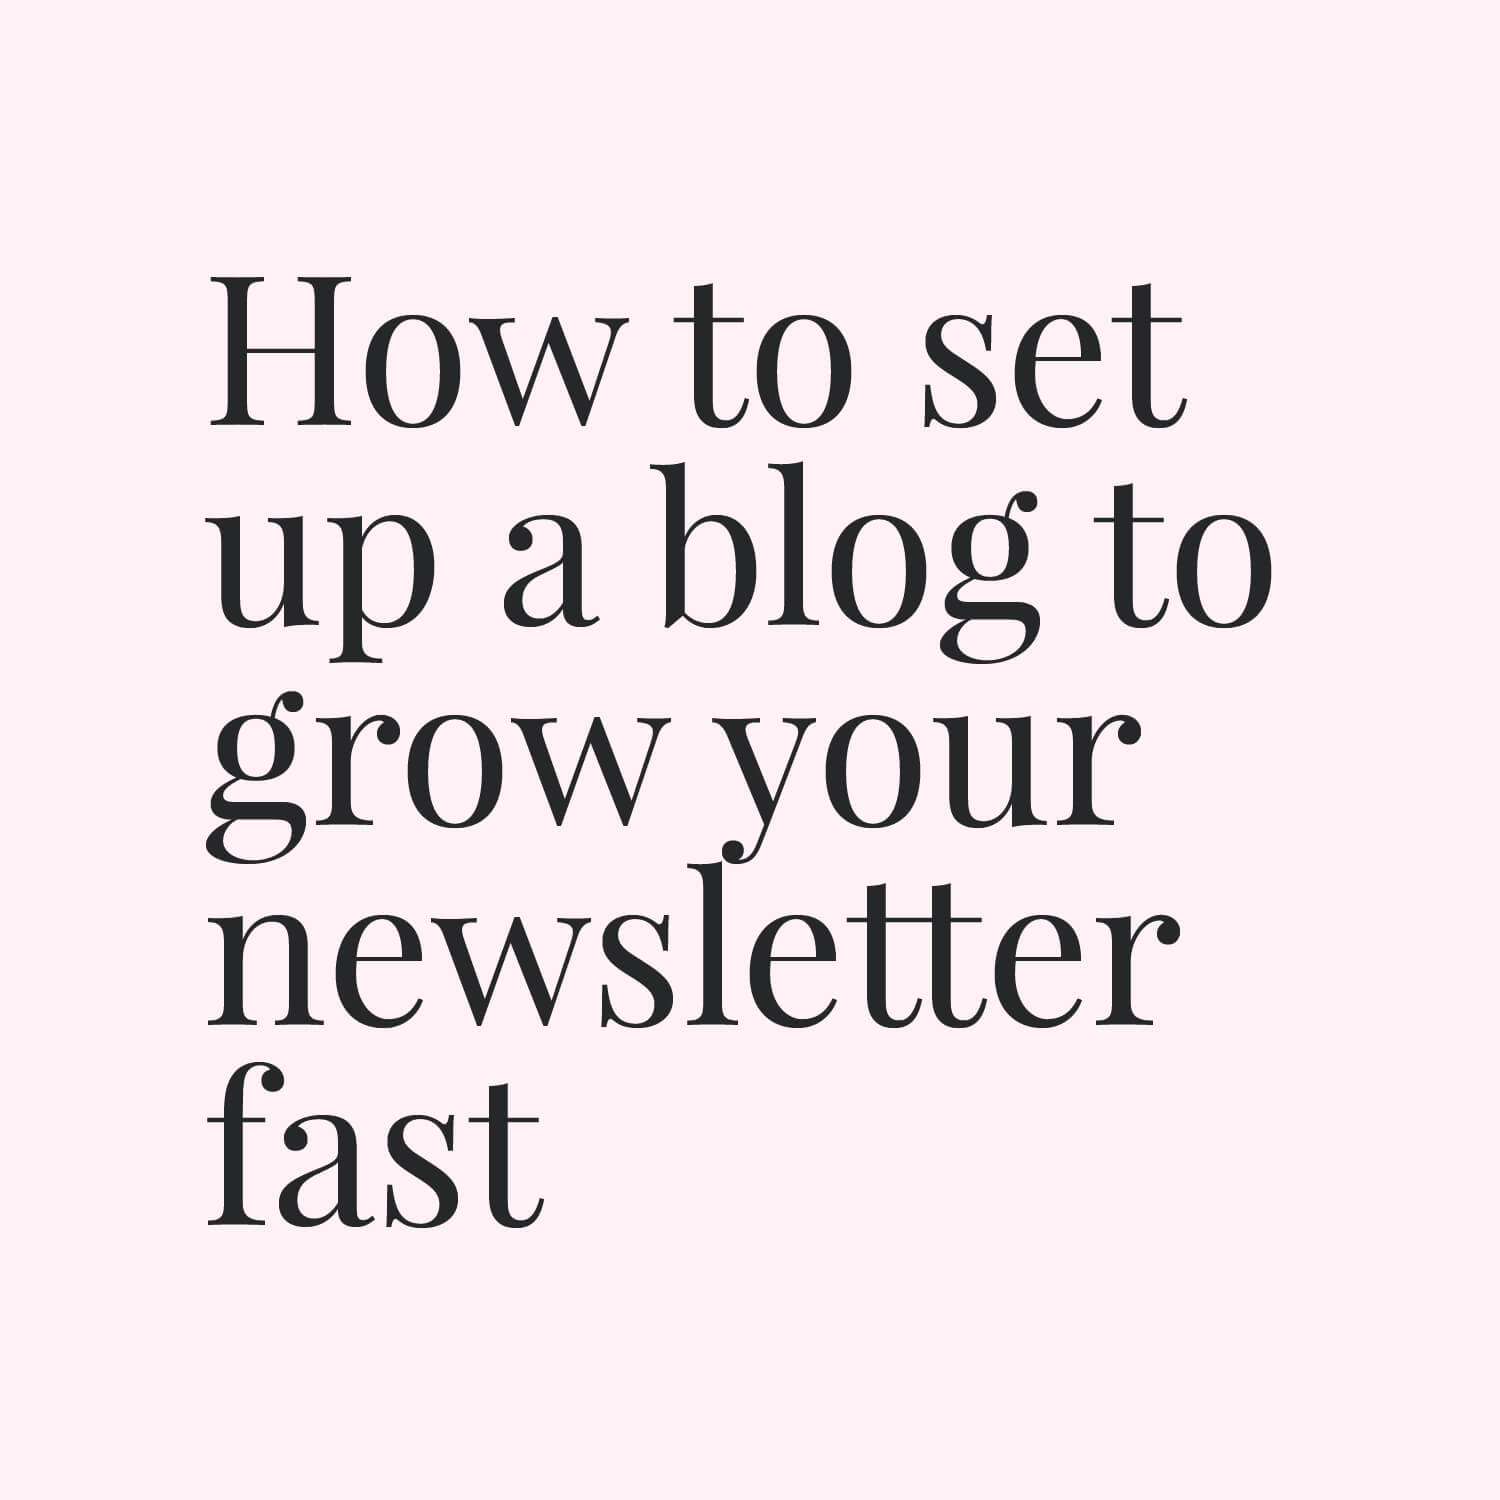 How to set up a blog to grow your newsletter fast small.jpg